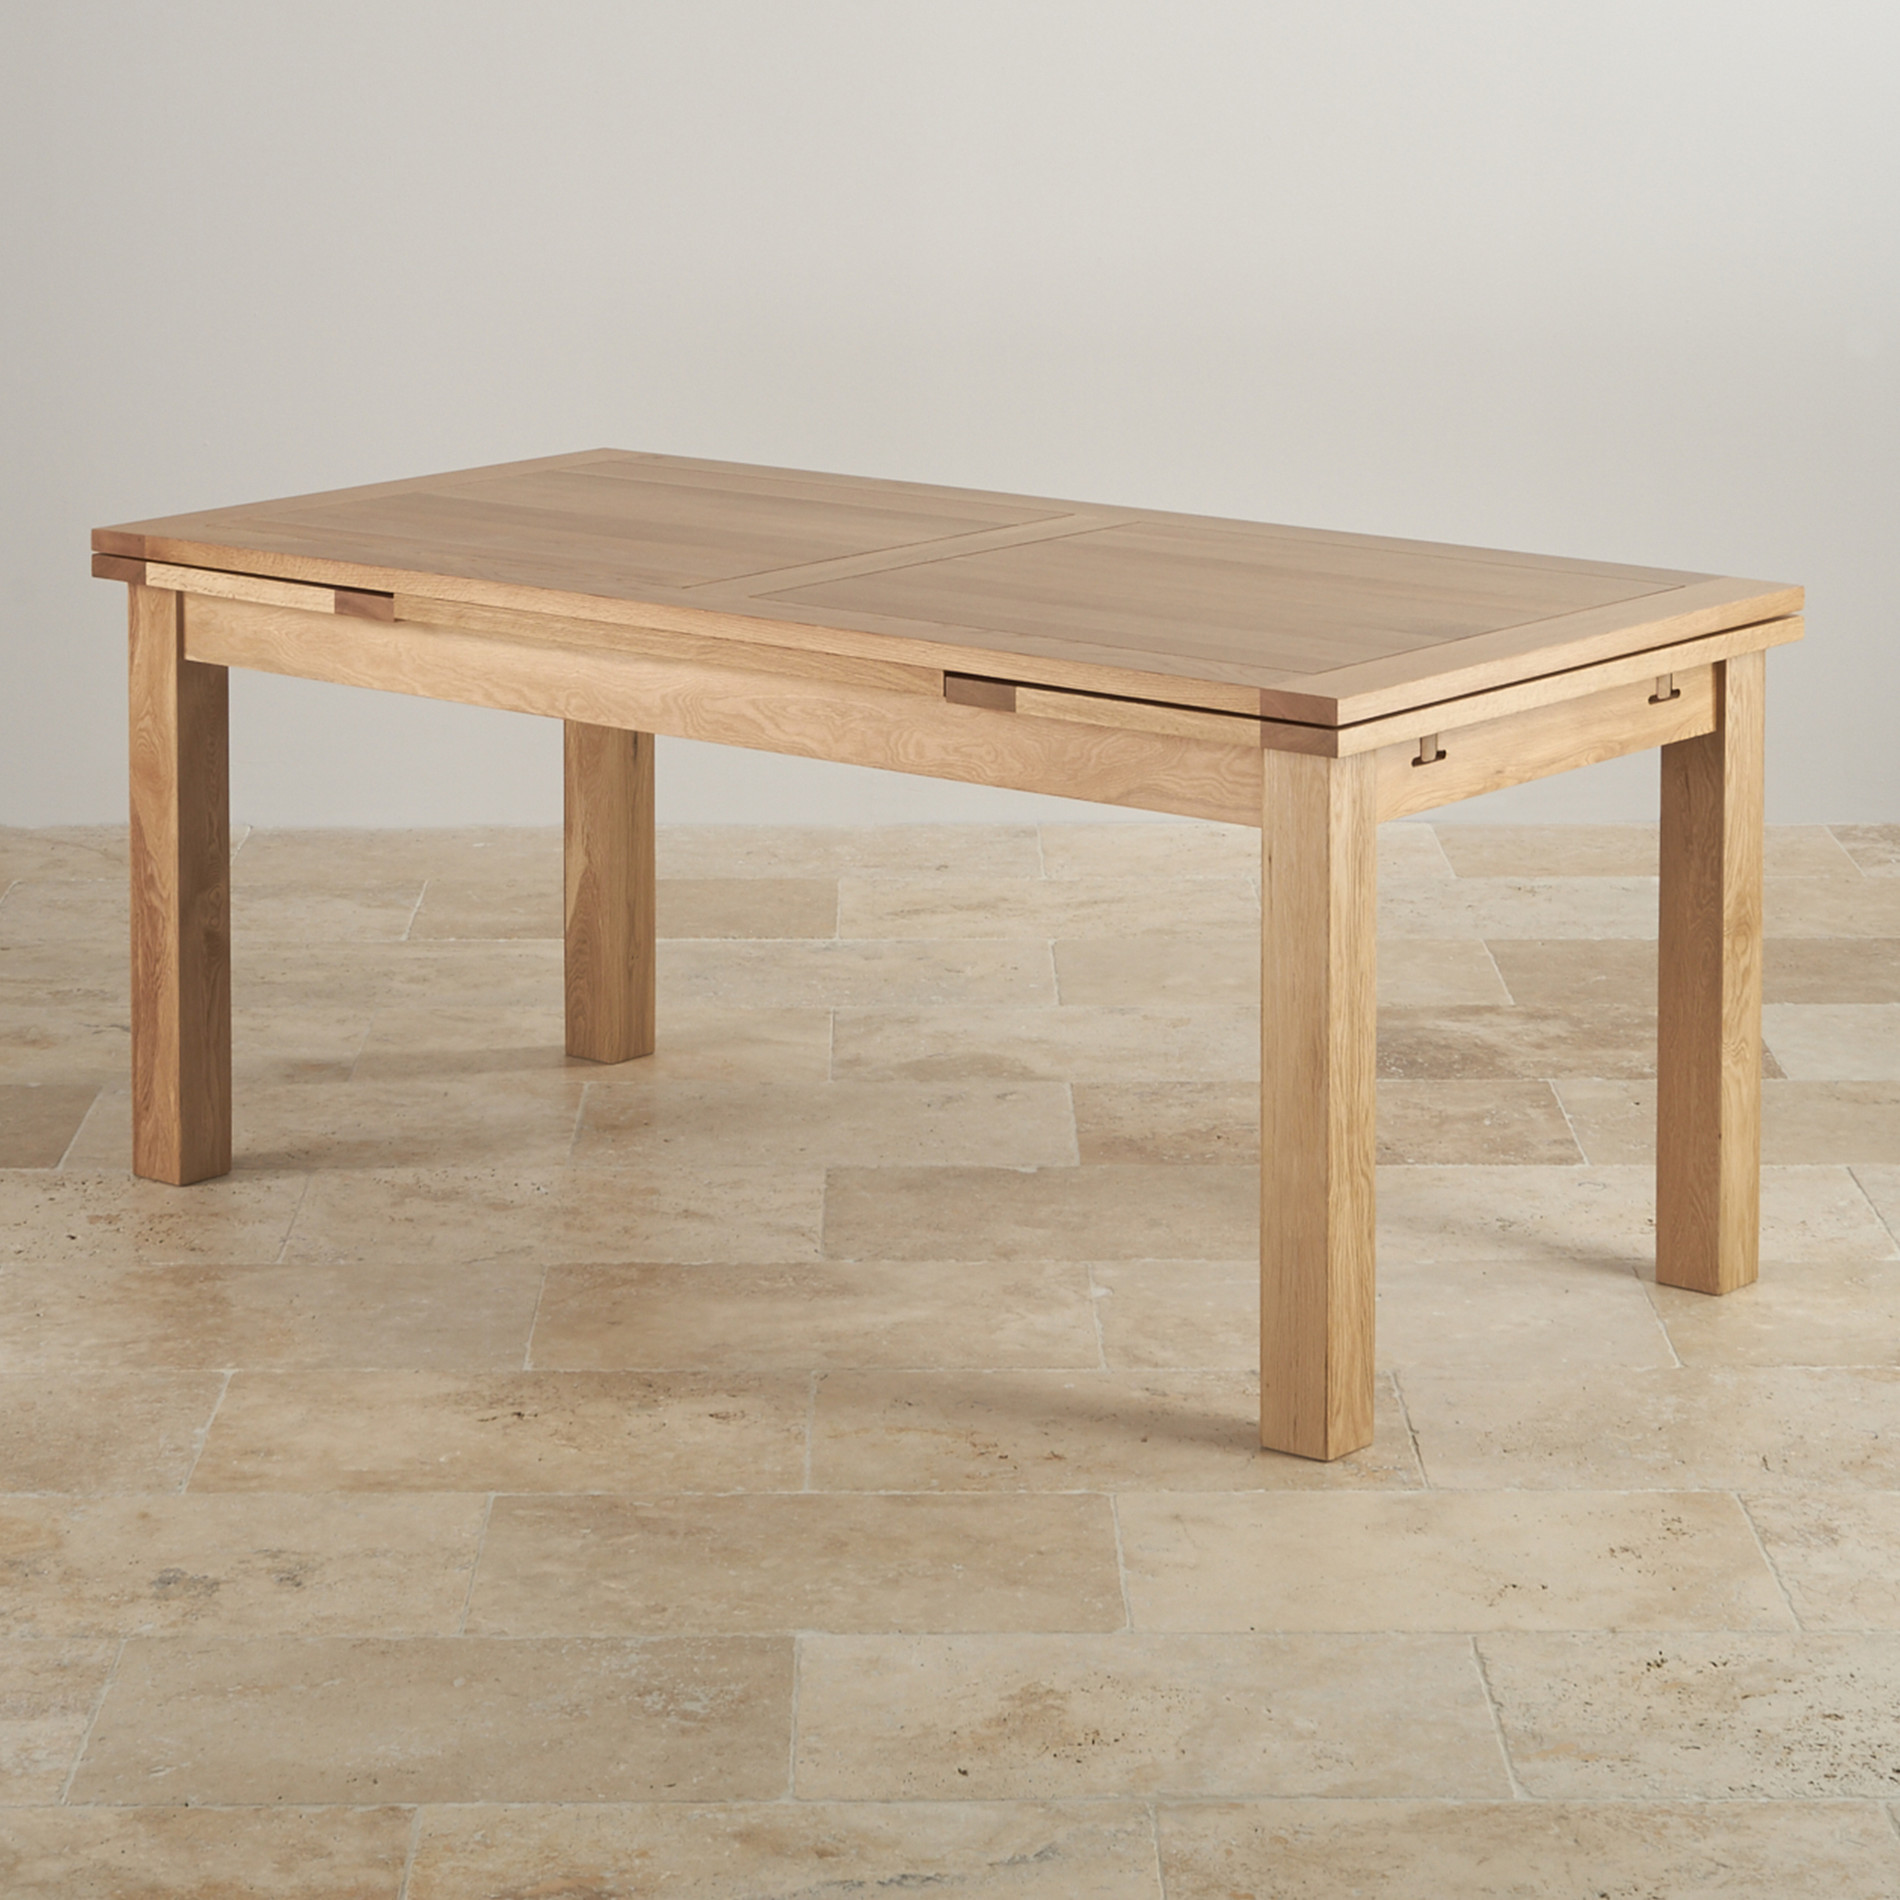 Dorset Extending Dining Table In Natural Oak